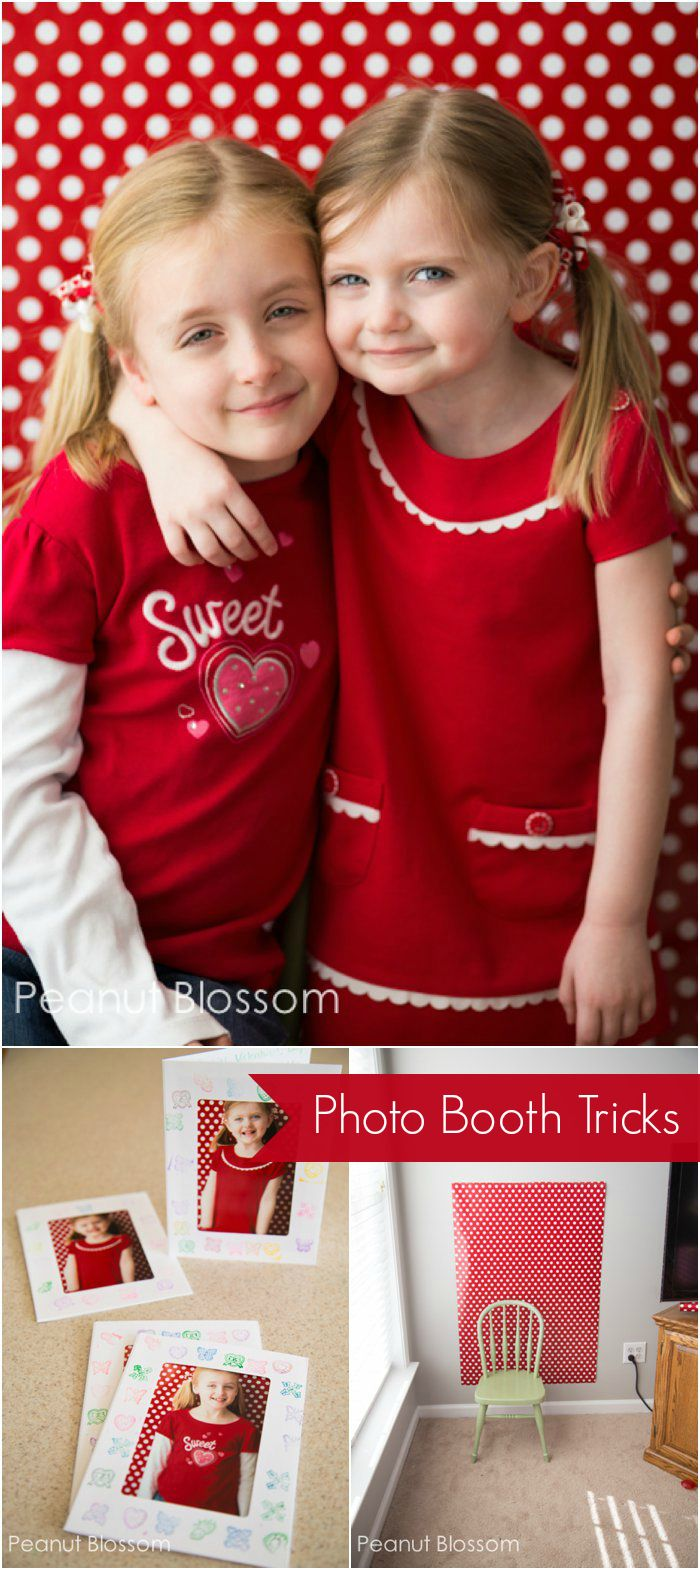 Capturing sweethearts: adorable photo booth and handmade card idea to work on with the kids for Valentine's Day! | Melissa & Doug's Playtime PressPhotos Booths, Capture Kids, Photos Ideas, Peanut Blossoms, Adorable Photos, Poses Tips, Simple Poses, Poses Tricks, Families Photos